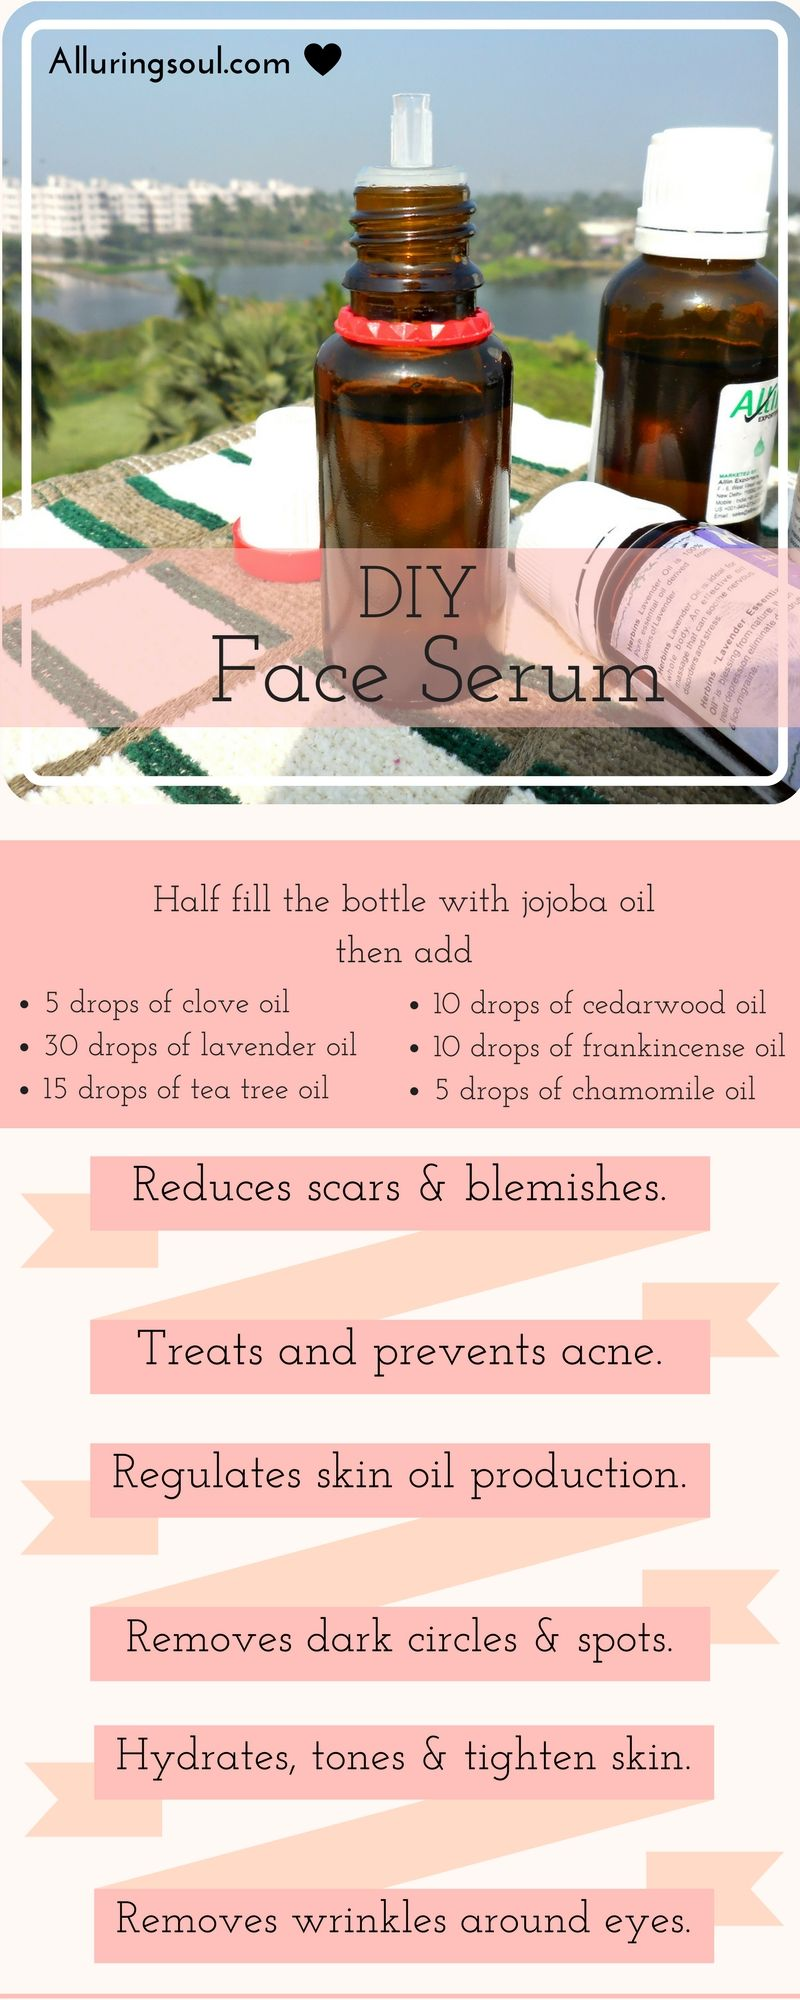 DIY Face Serum For Acne, Scars & Dark Spots